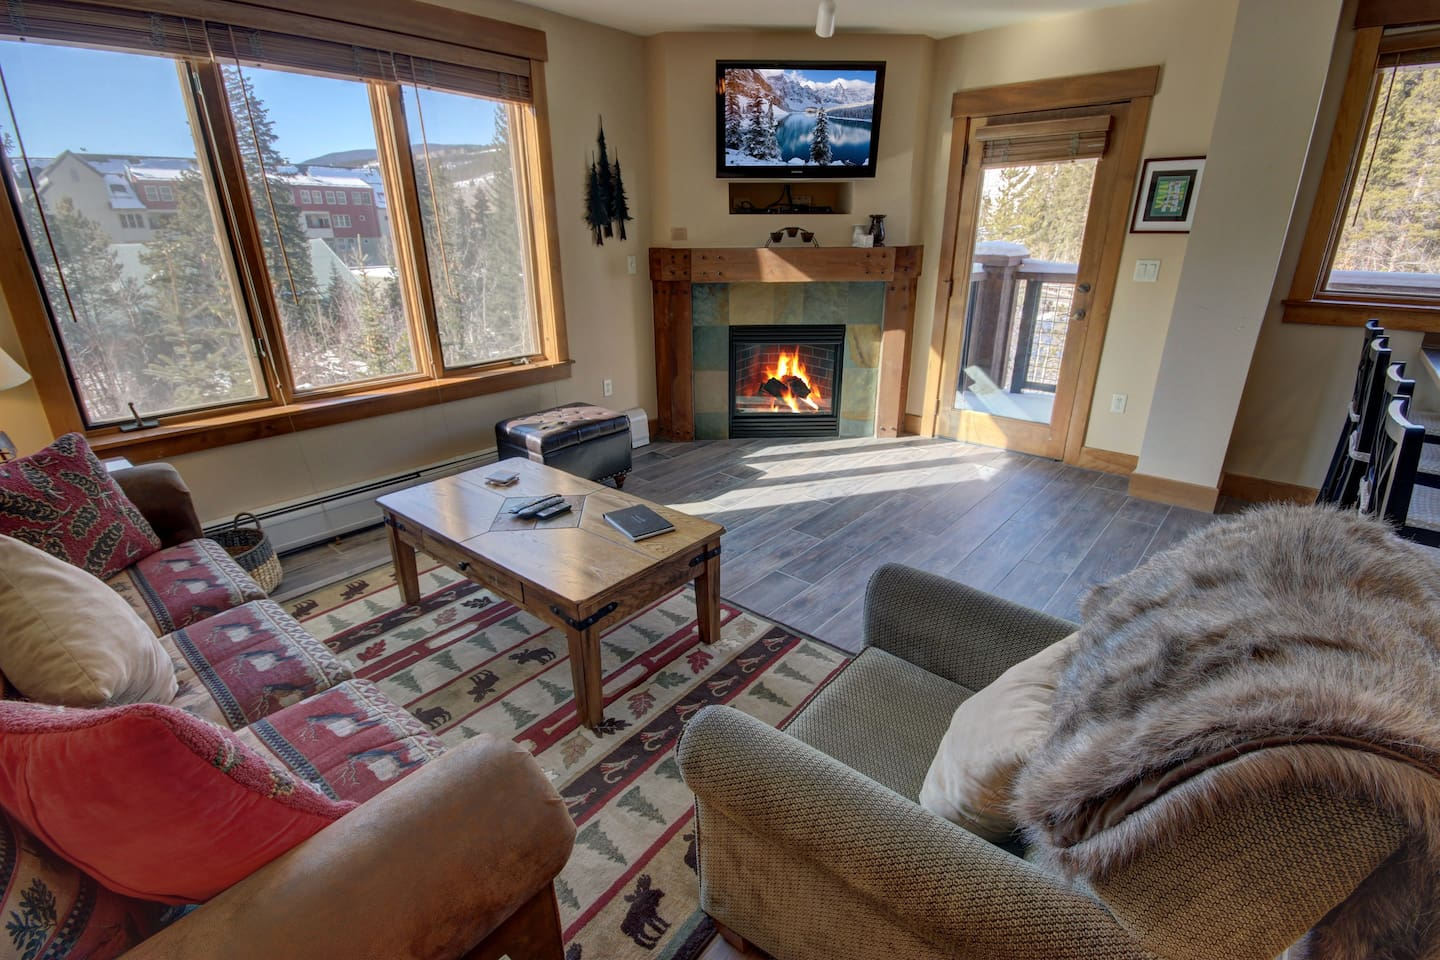 A big living room with TV and fireplace with a great view of the mountains